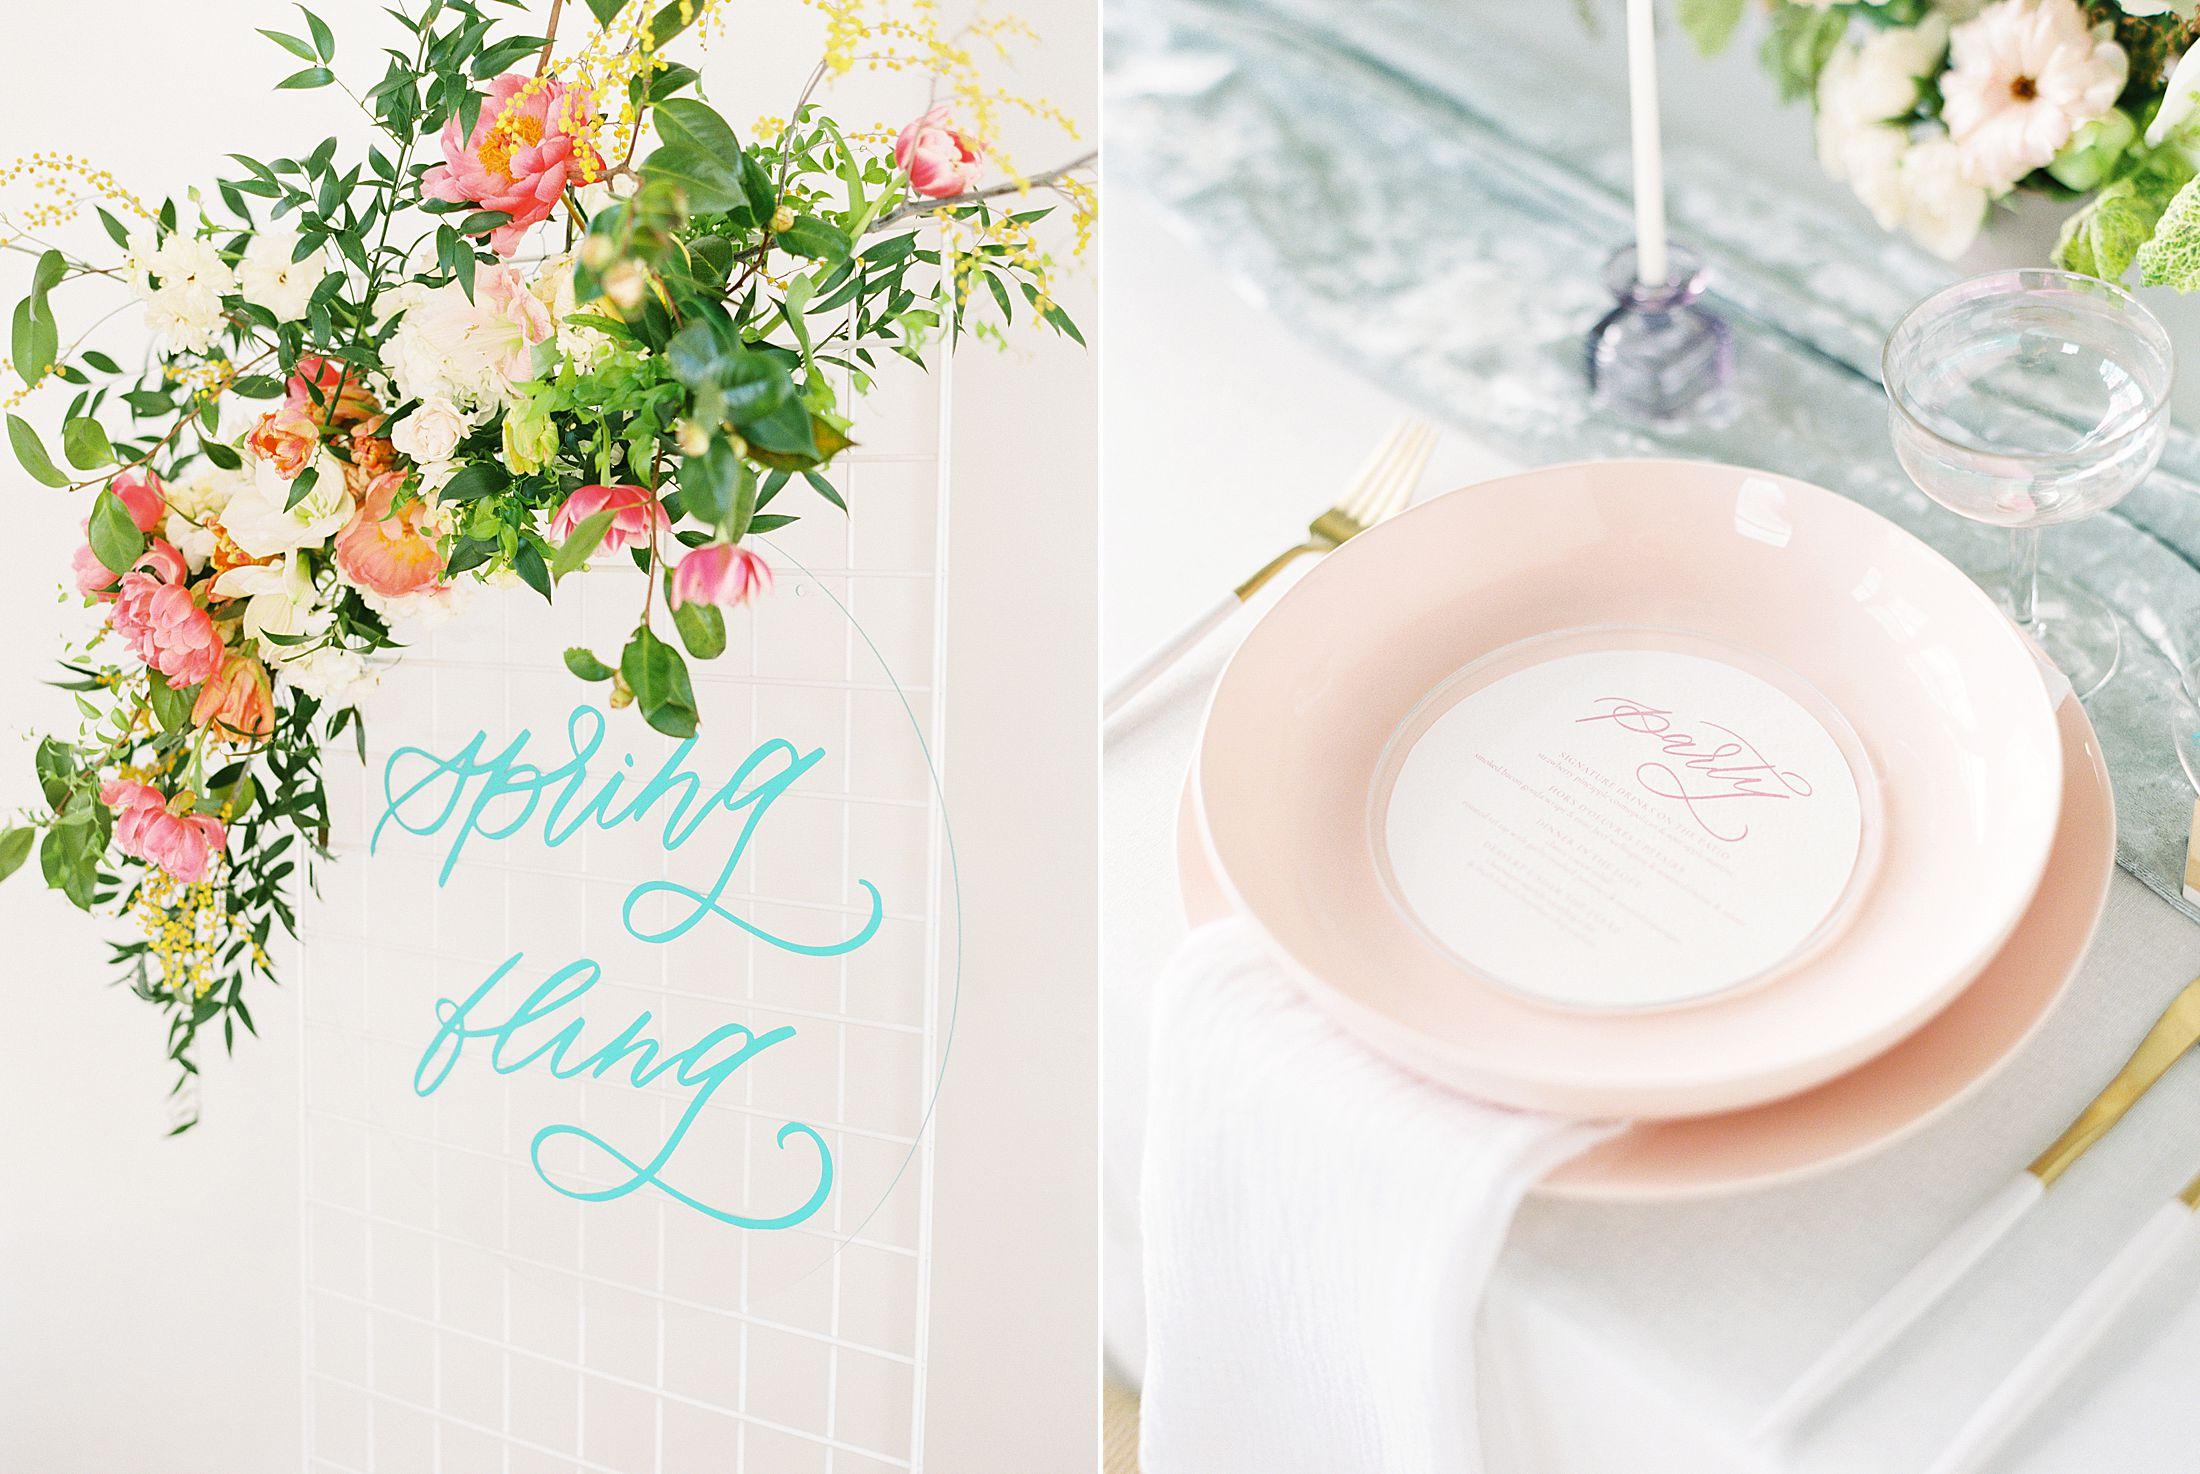 Bay Area Spring Wedding Inspiration - Ashley Baumgartner - Inspired By This - Party Crush Studio and Lens of Lenox Videography - Bay Area Wedding Photography_0008.jpg